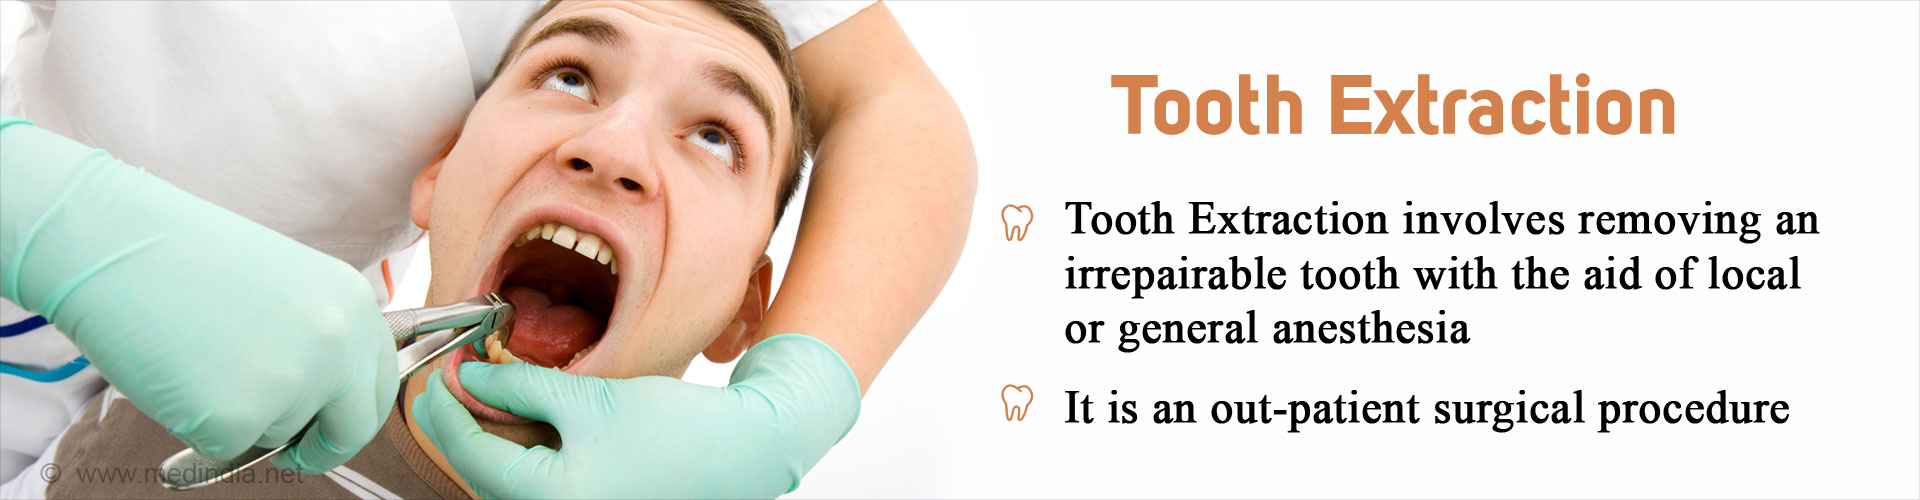 Tooth Extraction - Tooth extraction is an out-patient surgical procedure - It involves removing an irreparable tooth with the aid of local or general anesthesia